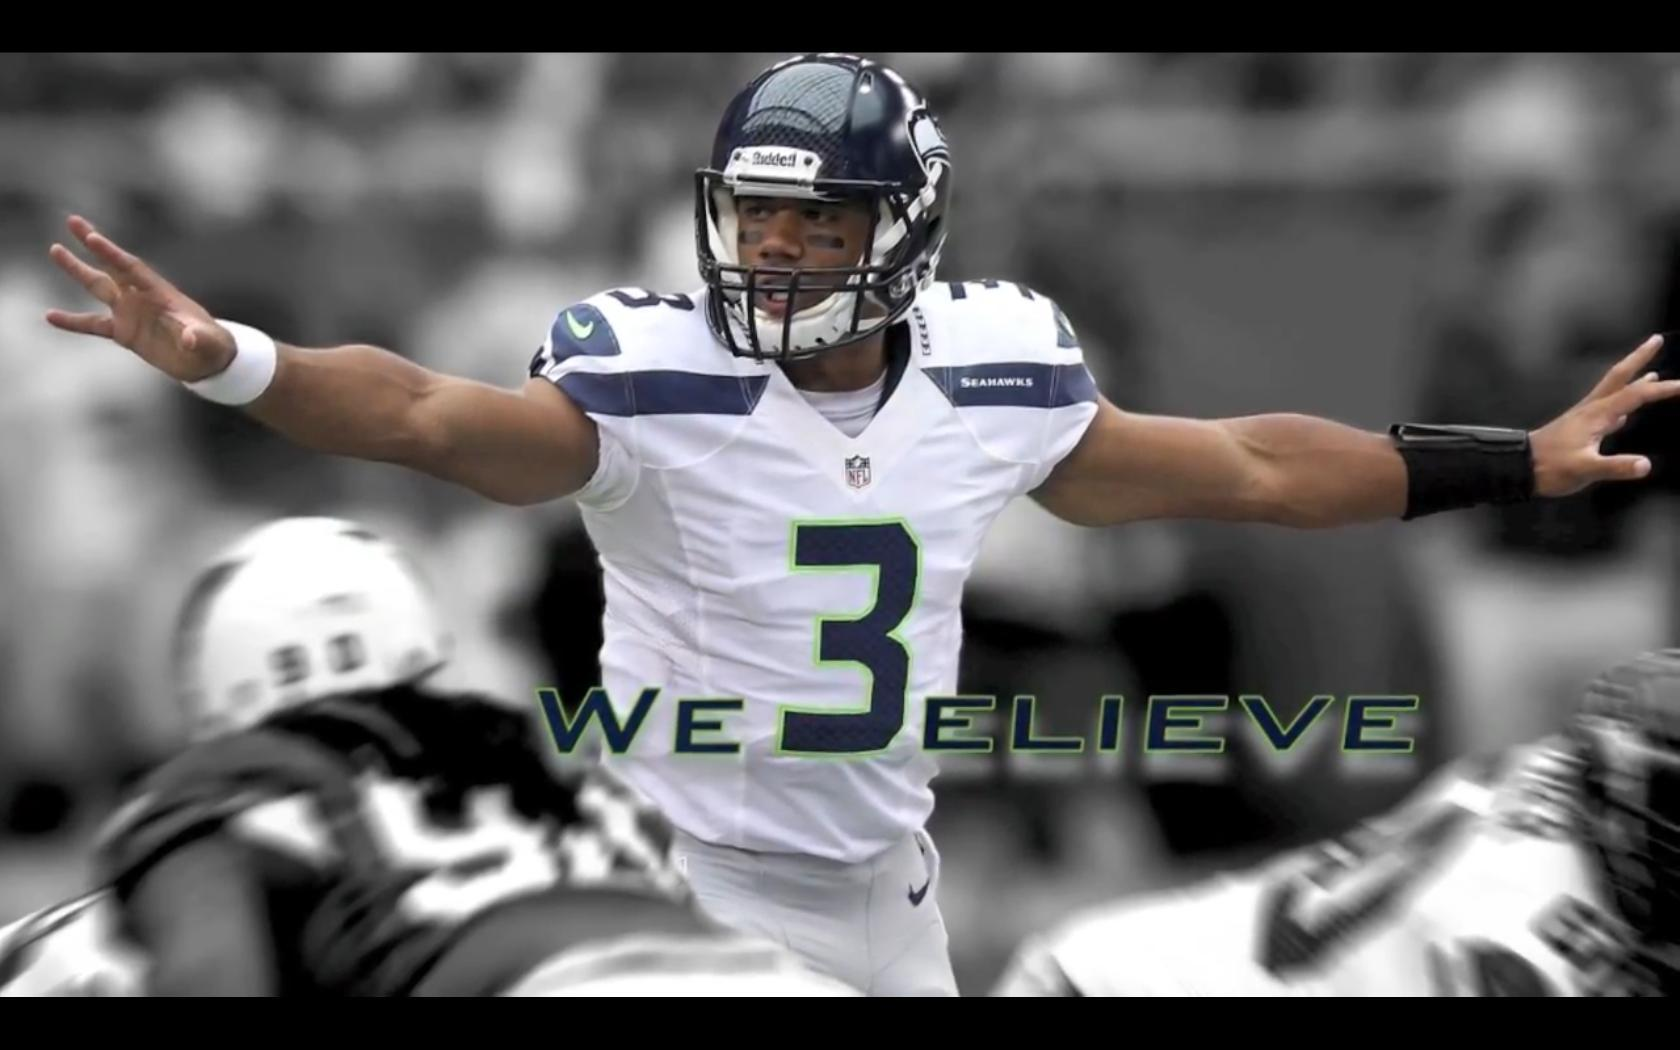 d37a97c49 Russell Wilson 2018 Wallpapers - Wallpaper Cave